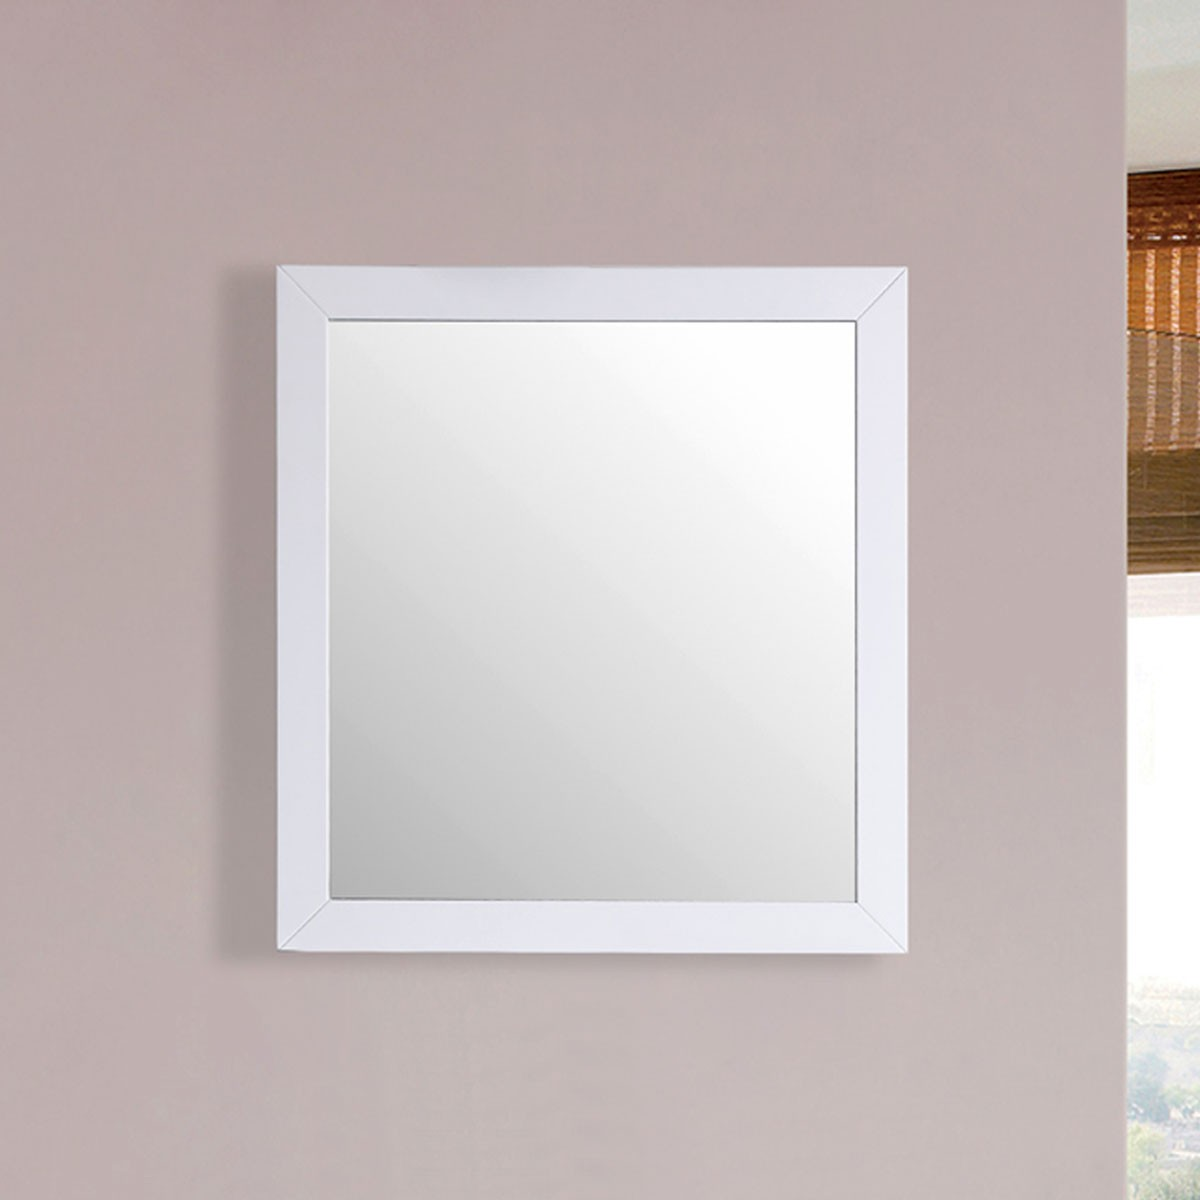 30 x 31 In. Mirror with White Frame (DK-T9312-30WM)